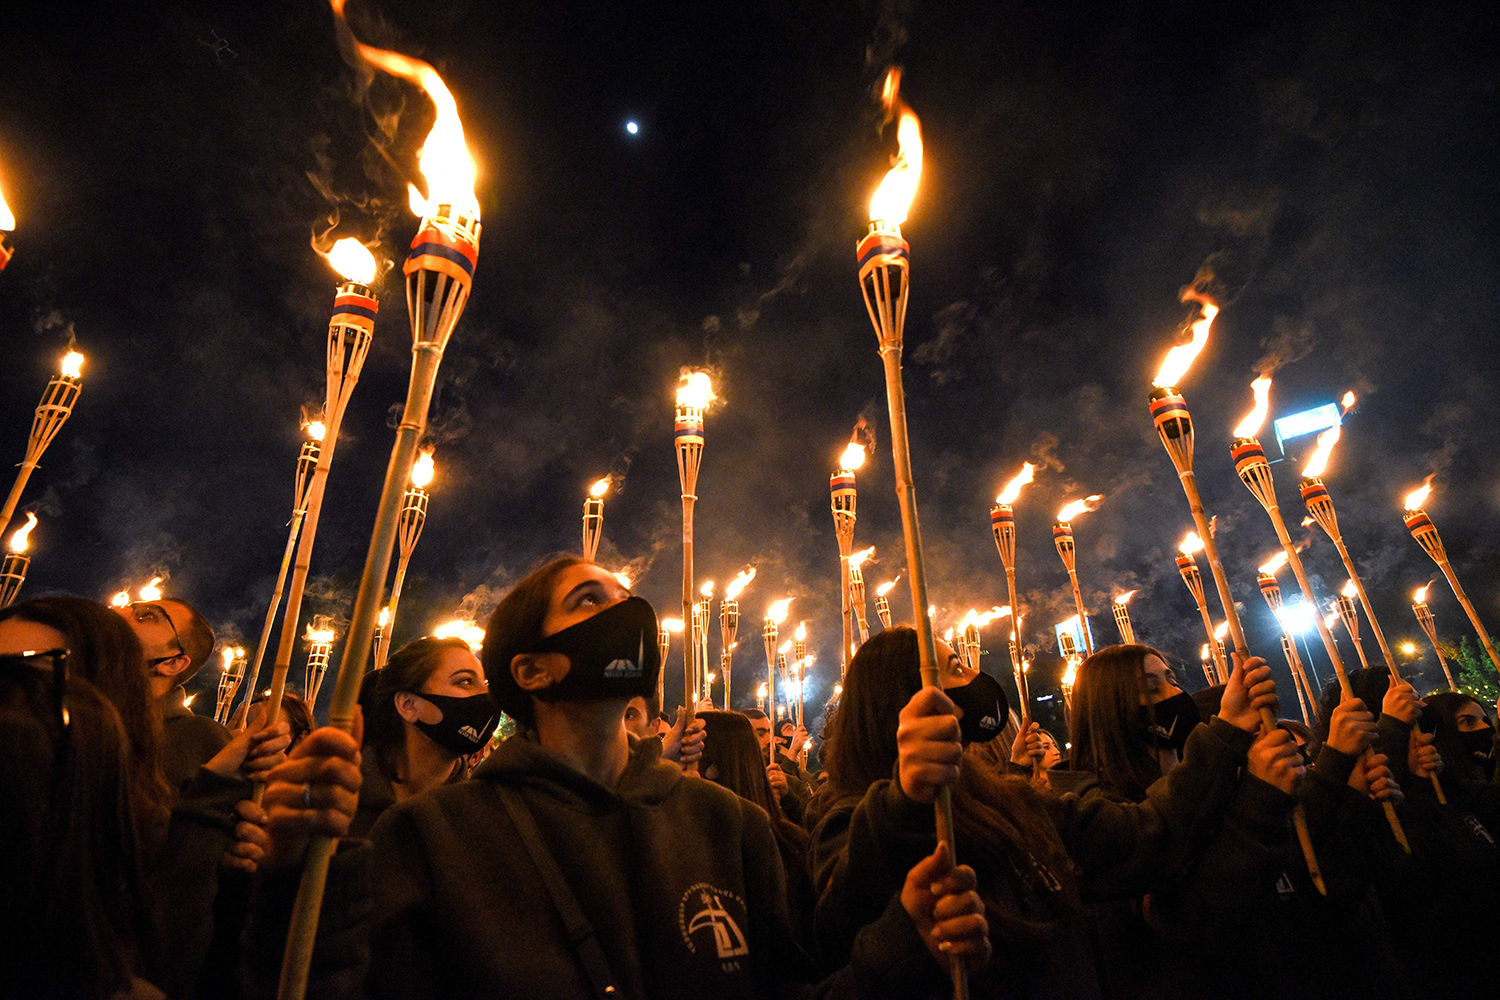 Armenians take part in a torchlight procession in Yerevan on April 23 to mark the 106th anniversary of the World War I-era Armenian genocide. KAREN MINASYAN/AFP via Getty Images